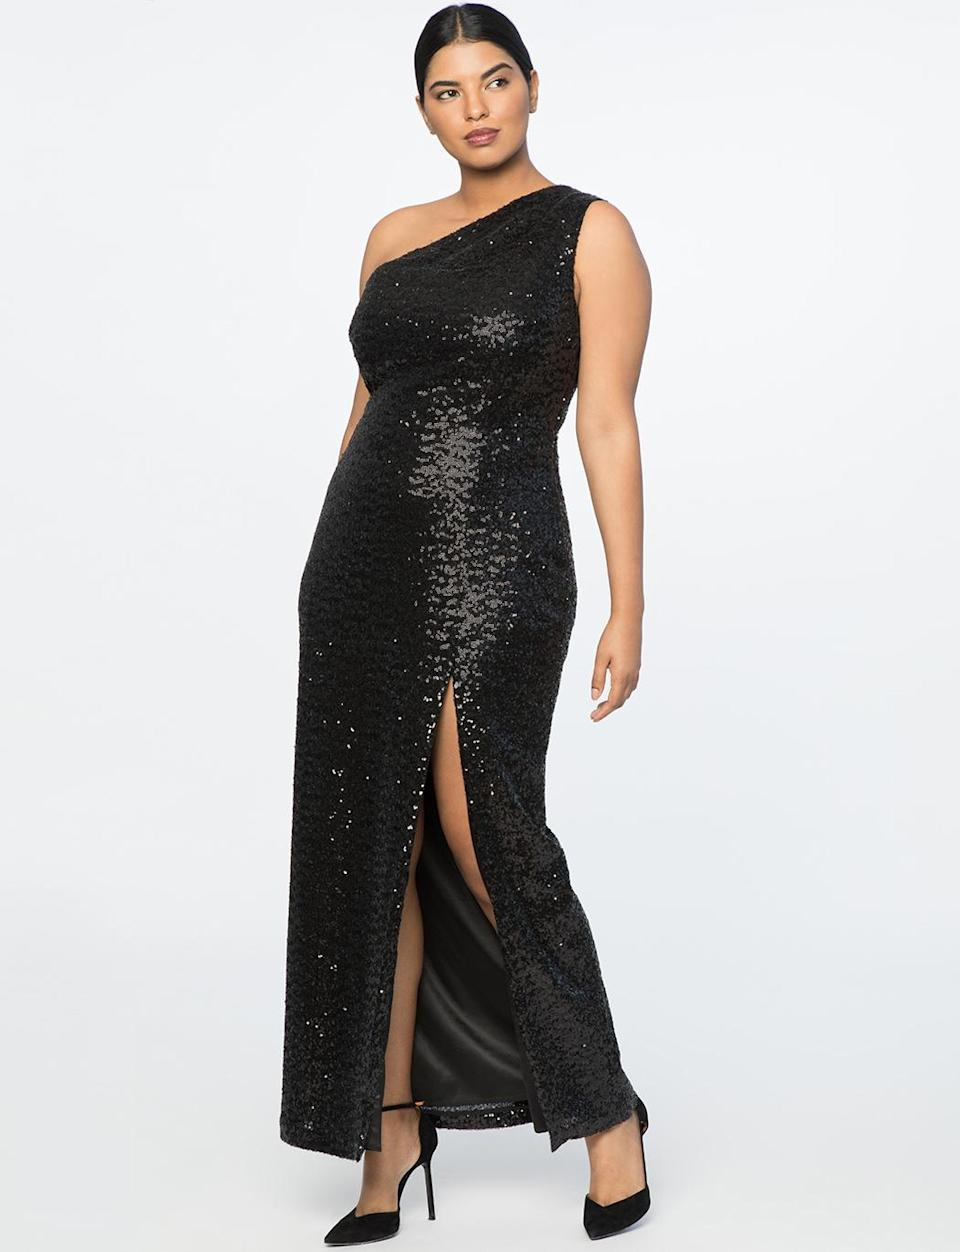 """<p>This black sequined dress with a high slit could easily be seen on an A-list actress, but lucky for you, it's a steal at under $200.<br>One-shoulder sequined gown, $190,<a rel=""""nofollow noopener"""" href=""""https://fave.co/2OjWZrm"""" target=""""_blank"""" data-ylk=""""slk:eloquii.com"""" class=""""link rapid-noclick-resp""""> eloquii.com</a> </p>"""